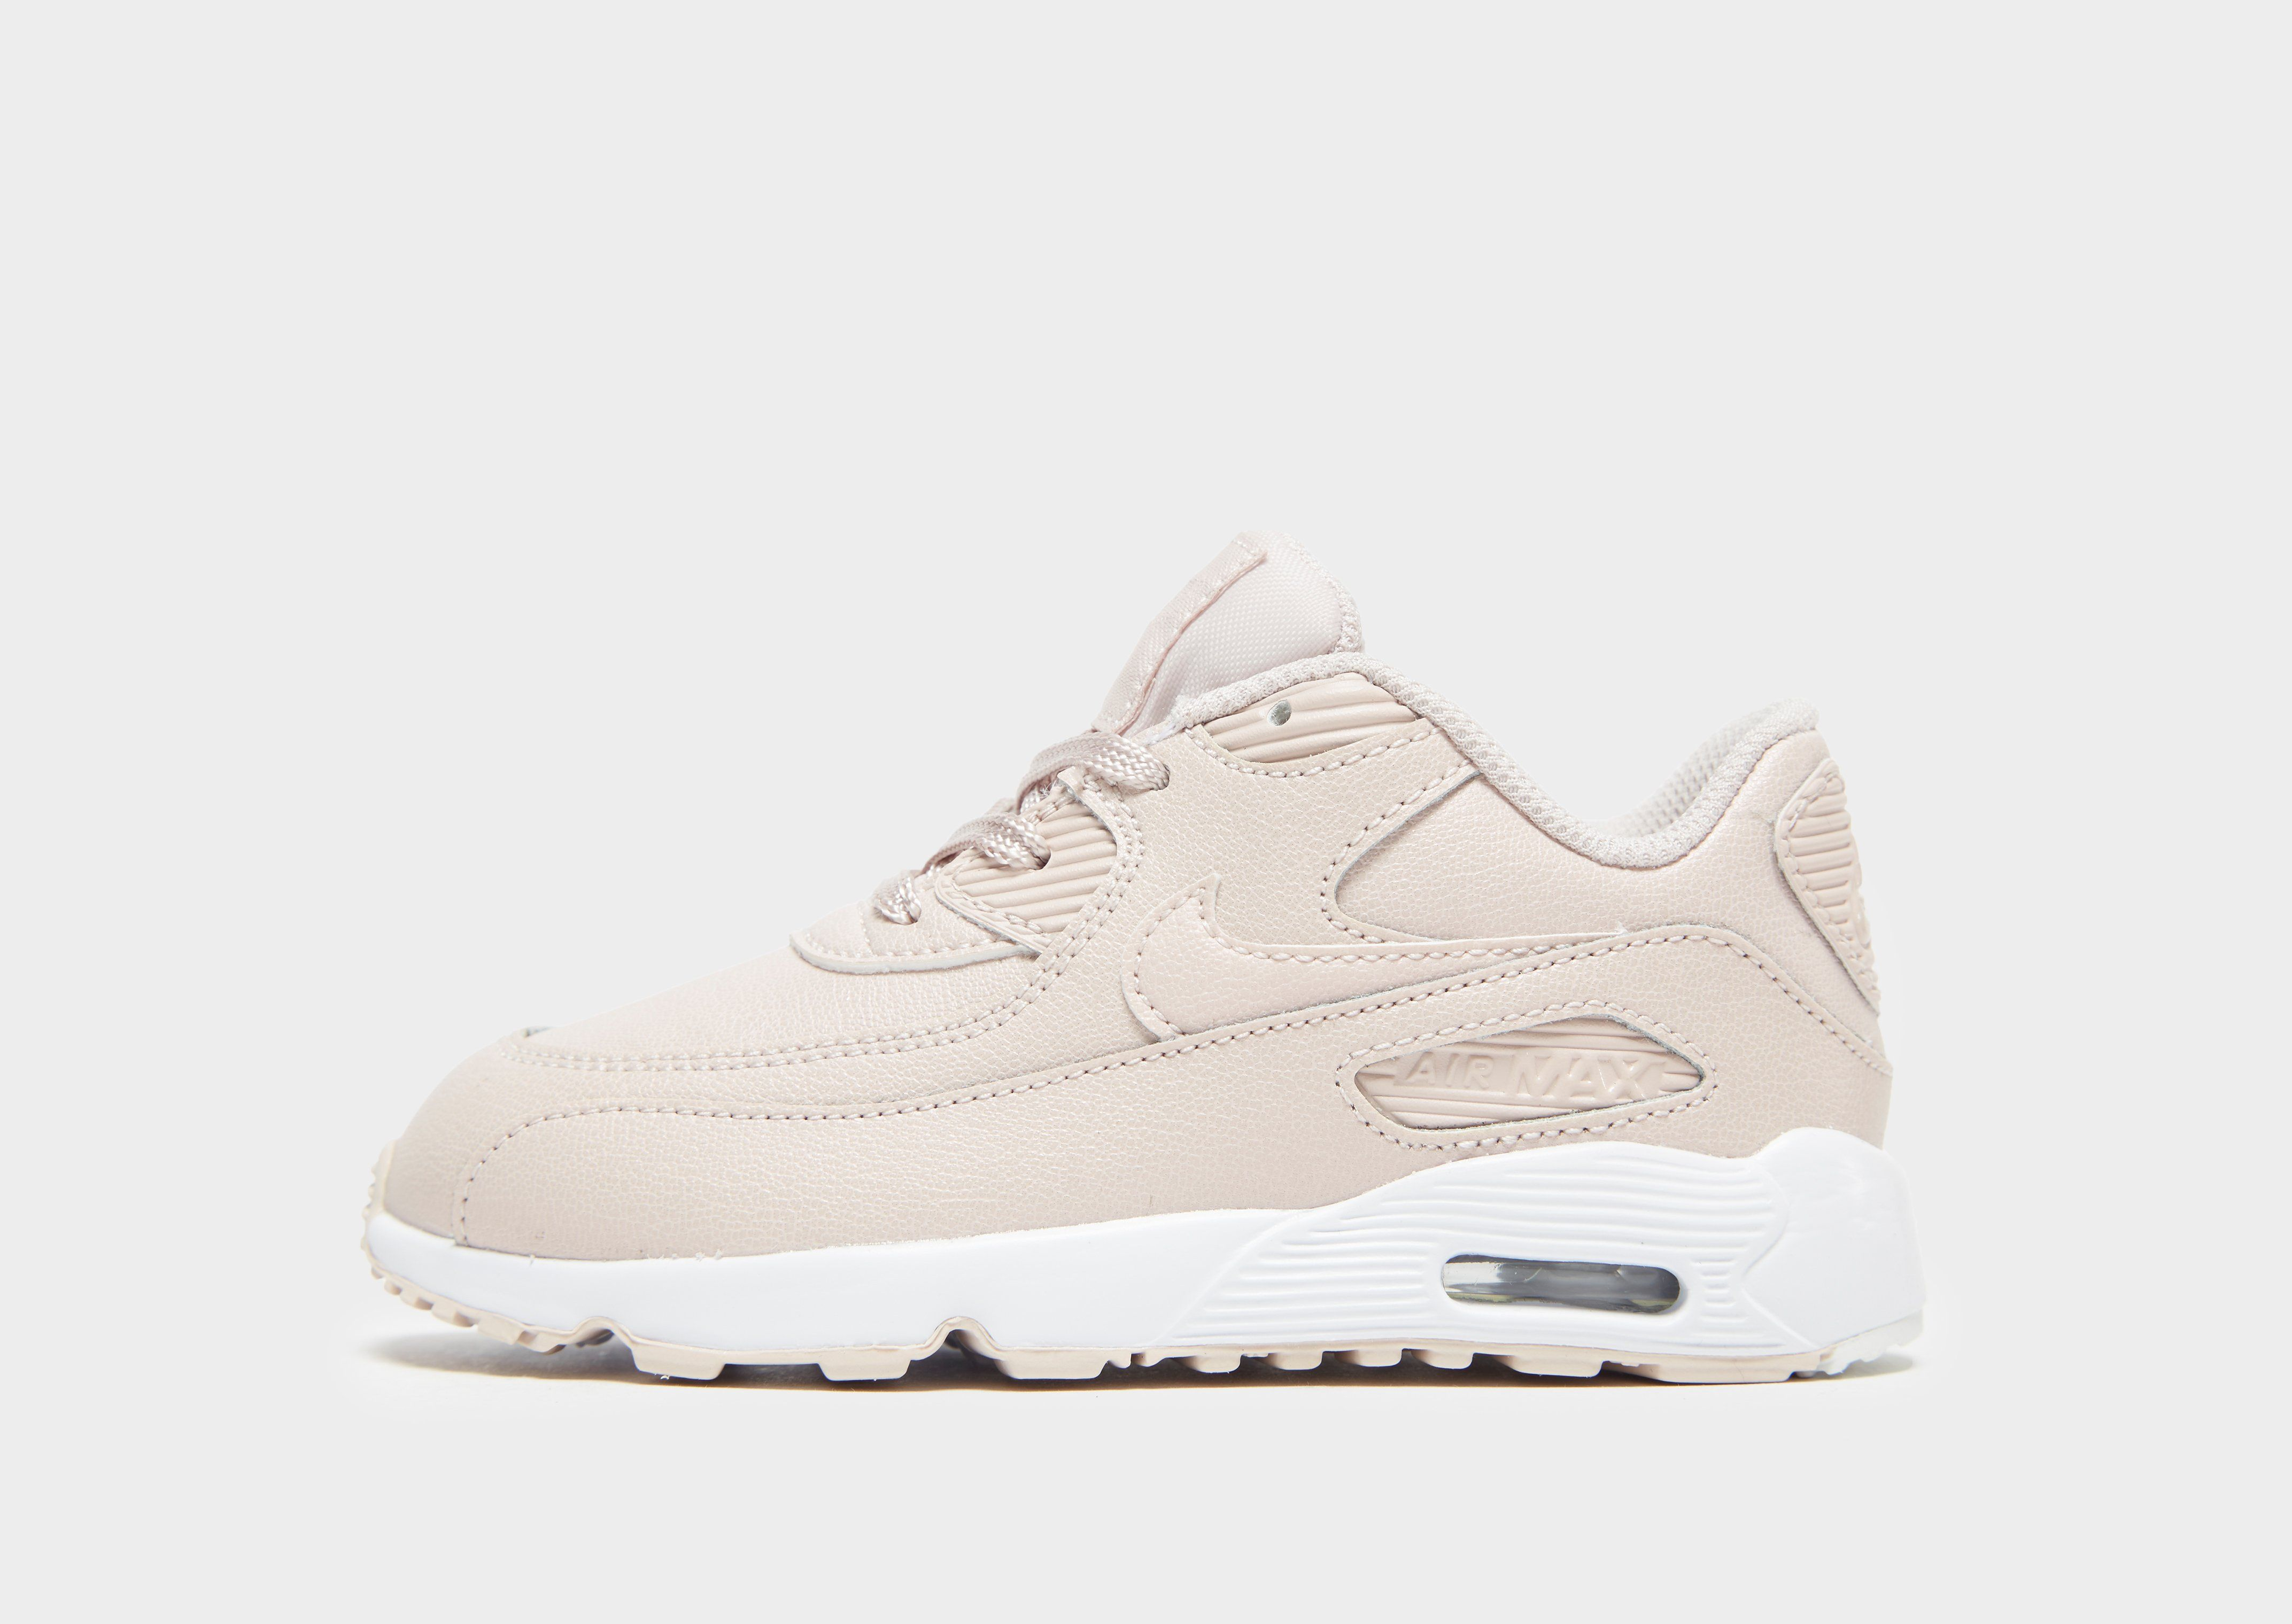 new style 3ce05 fa087 Nike Air Max 90 Leather Toddler Shoe | JD Sports